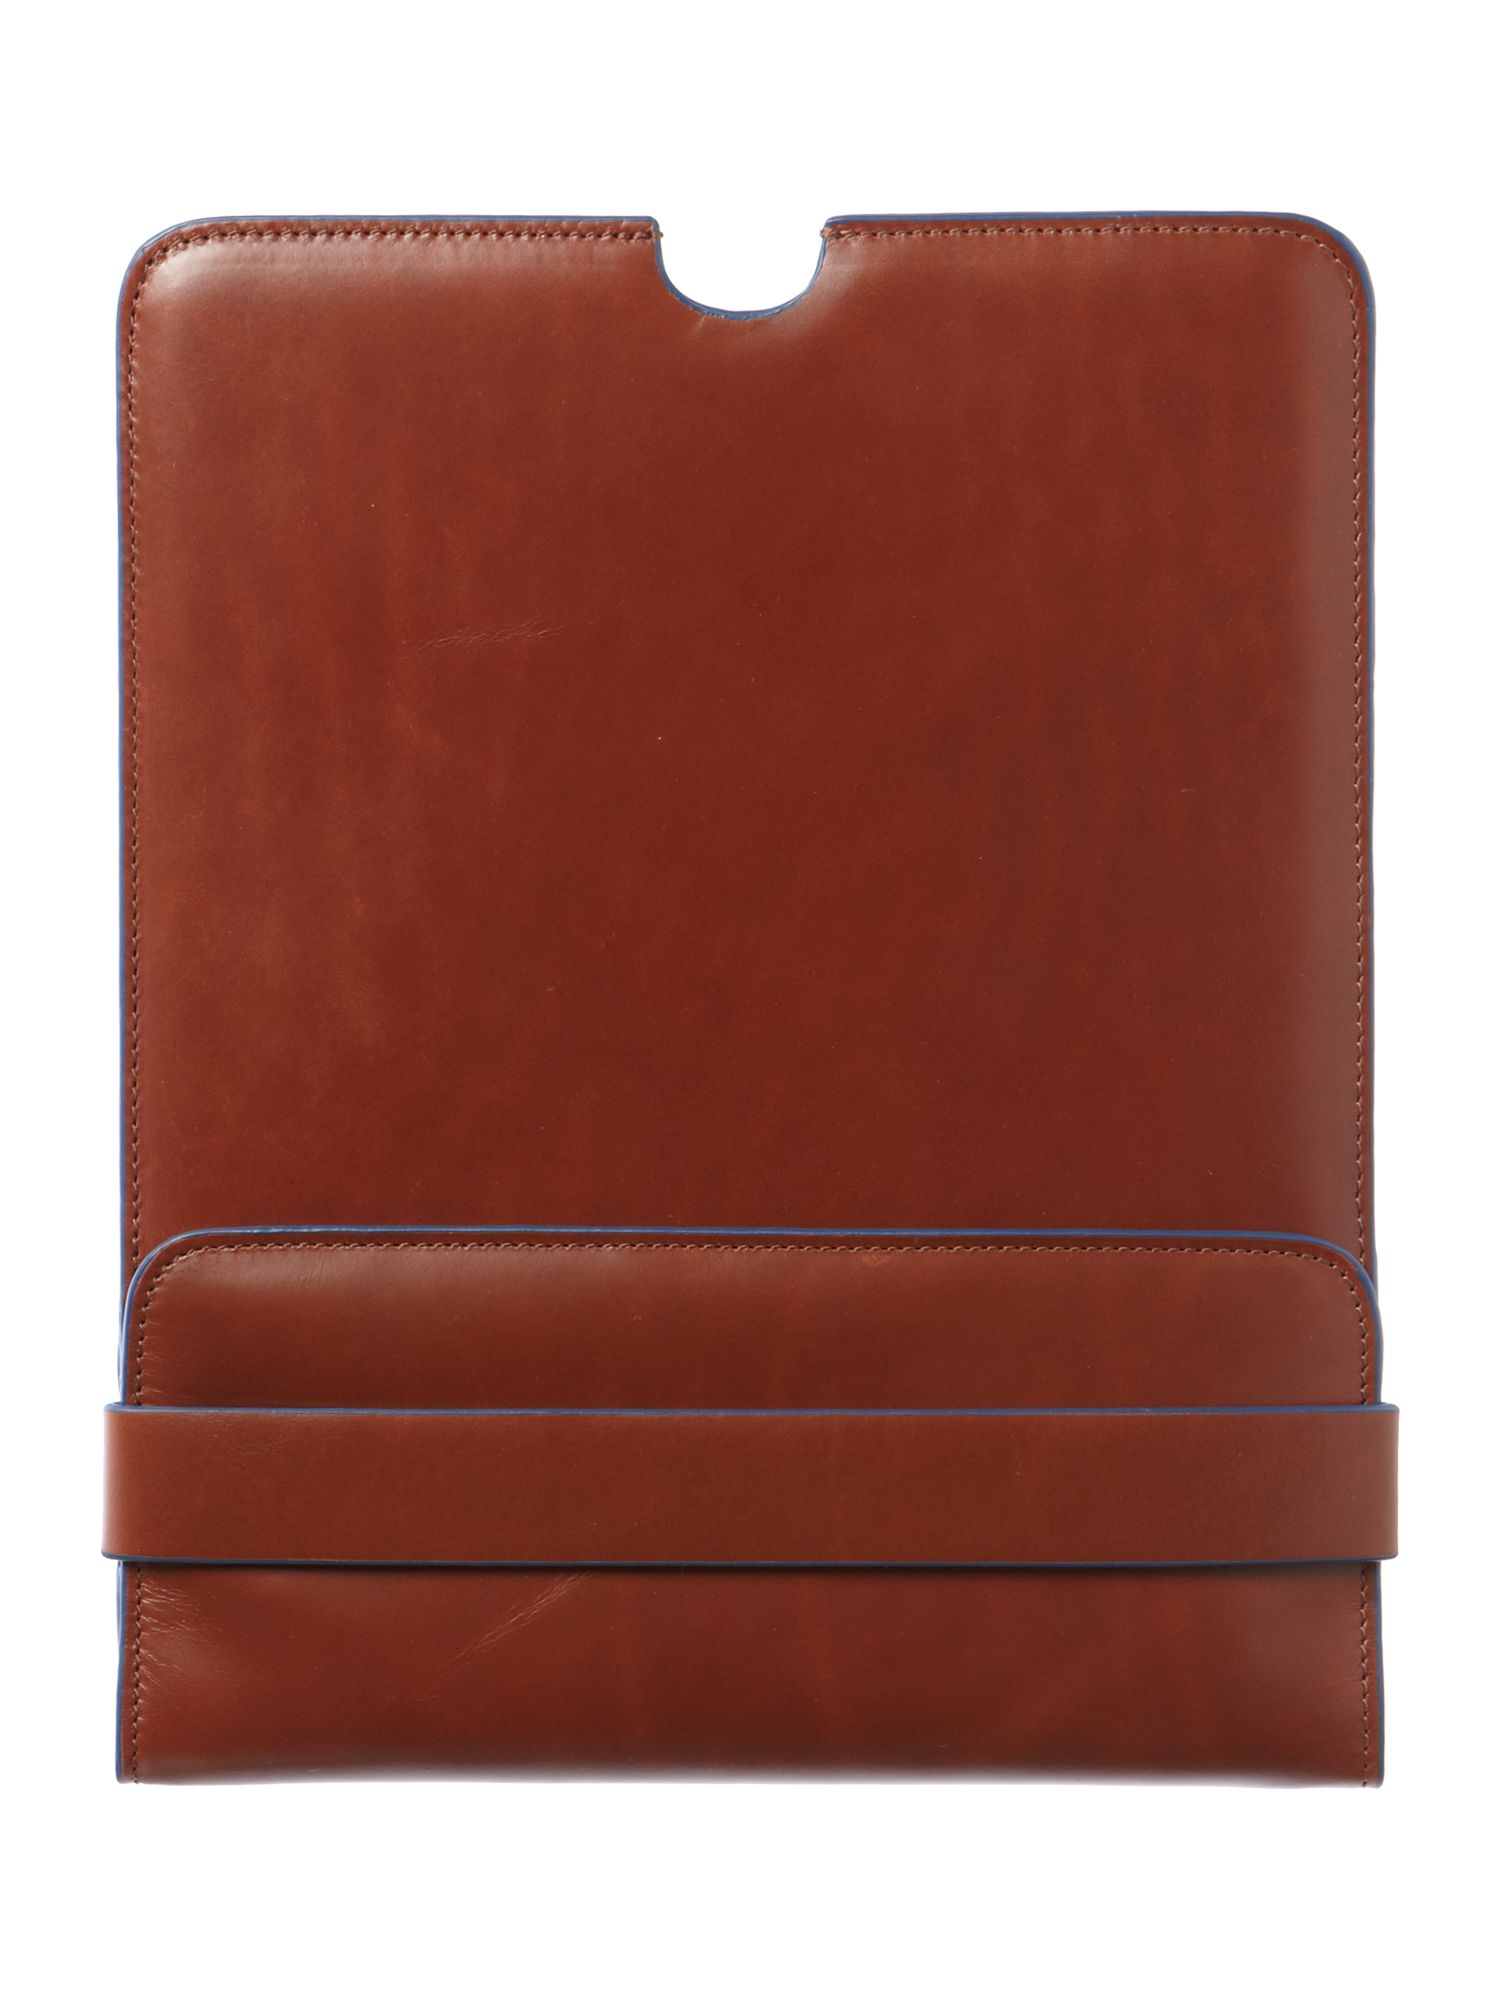 Leather envelope leather tablet case